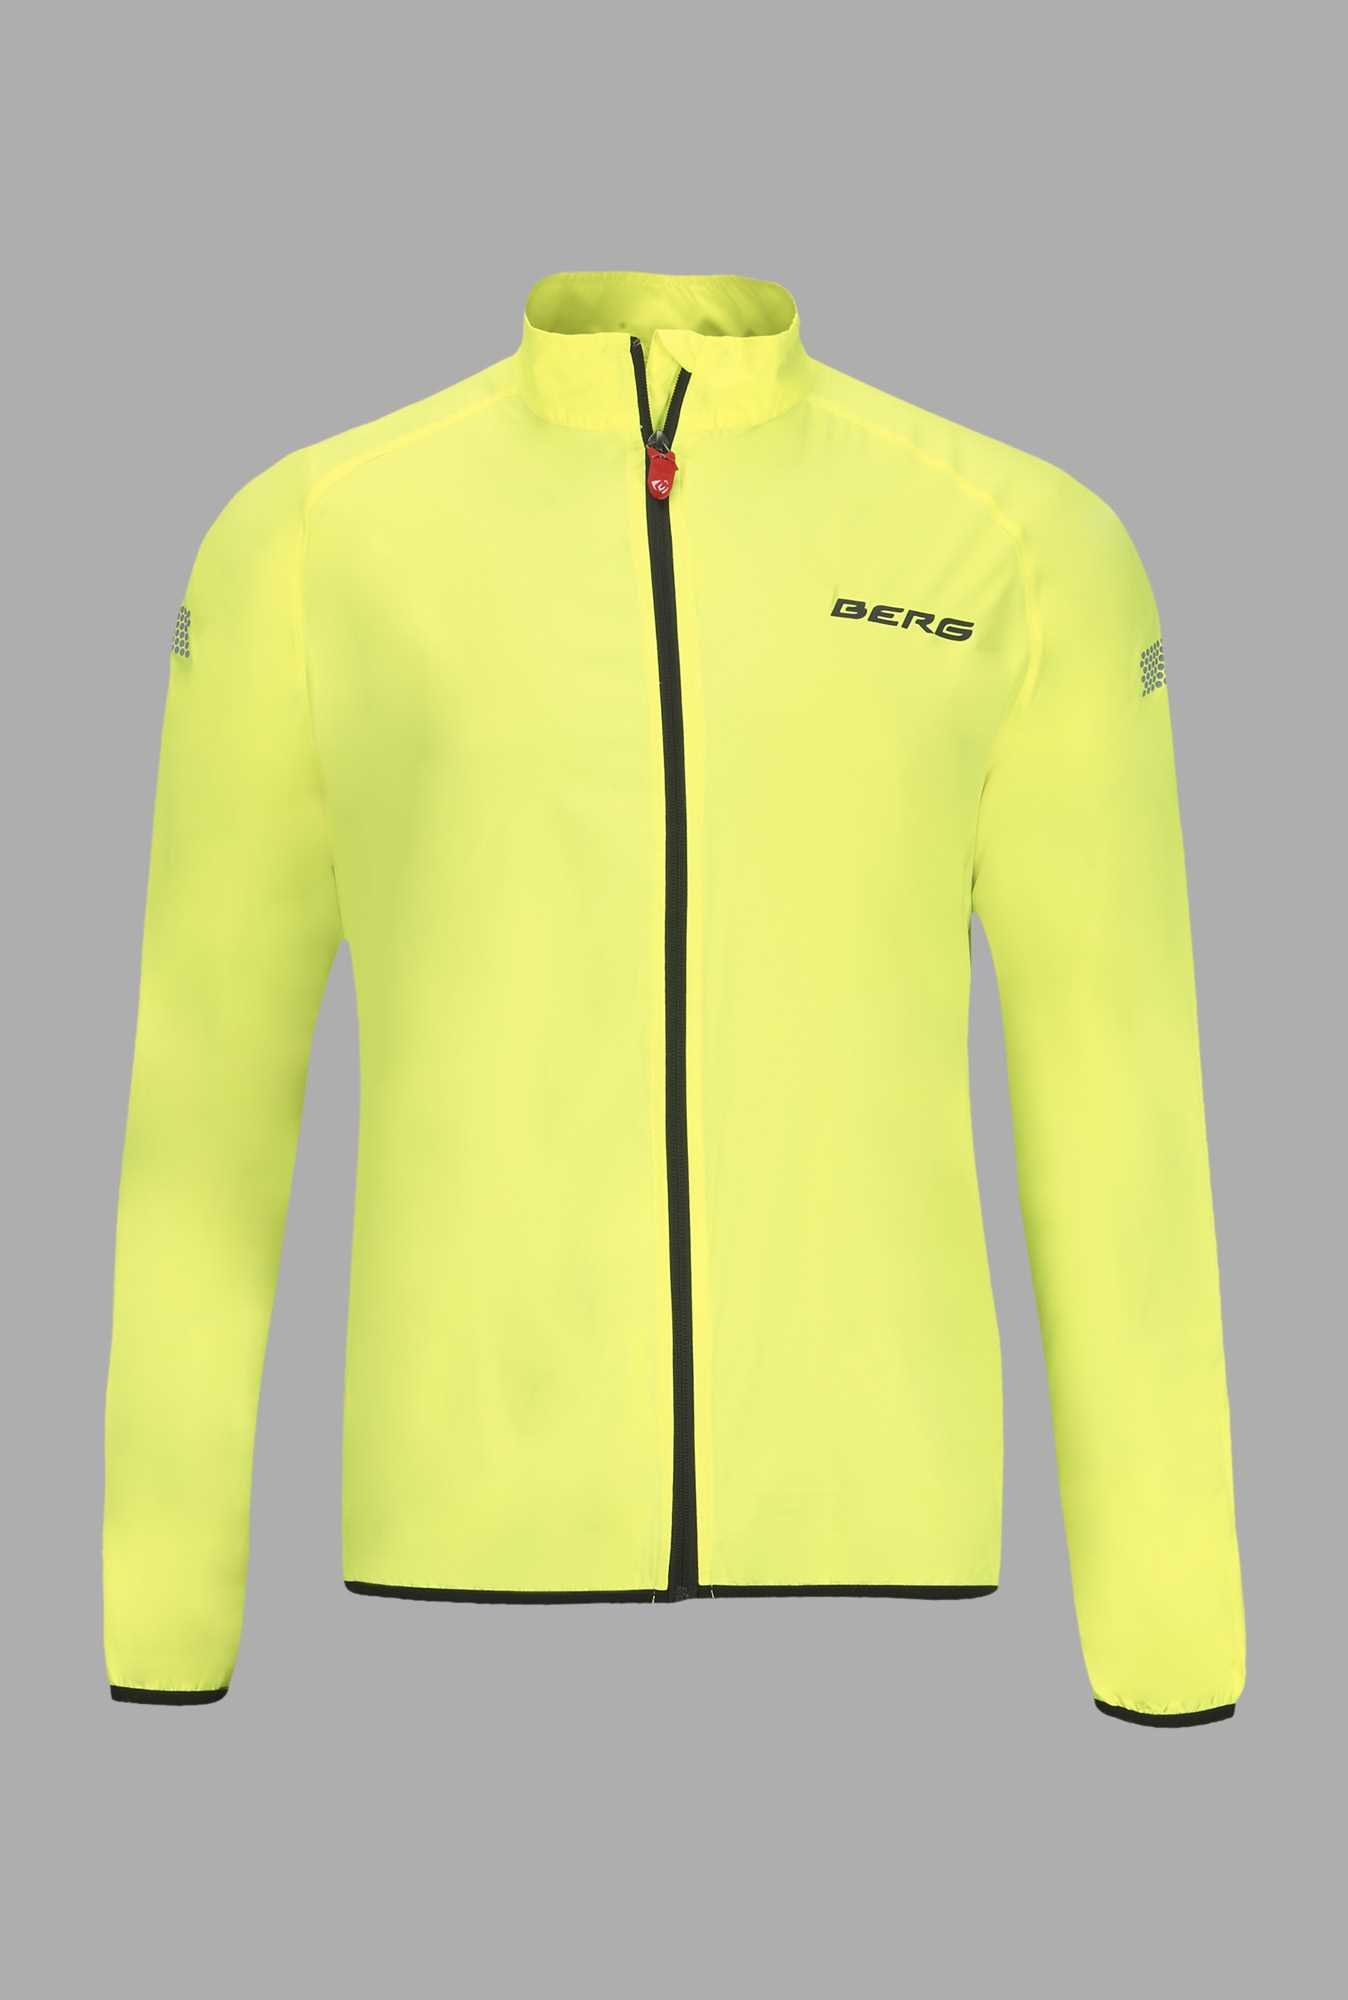 Berg Lime Solid Cycling Windjacket